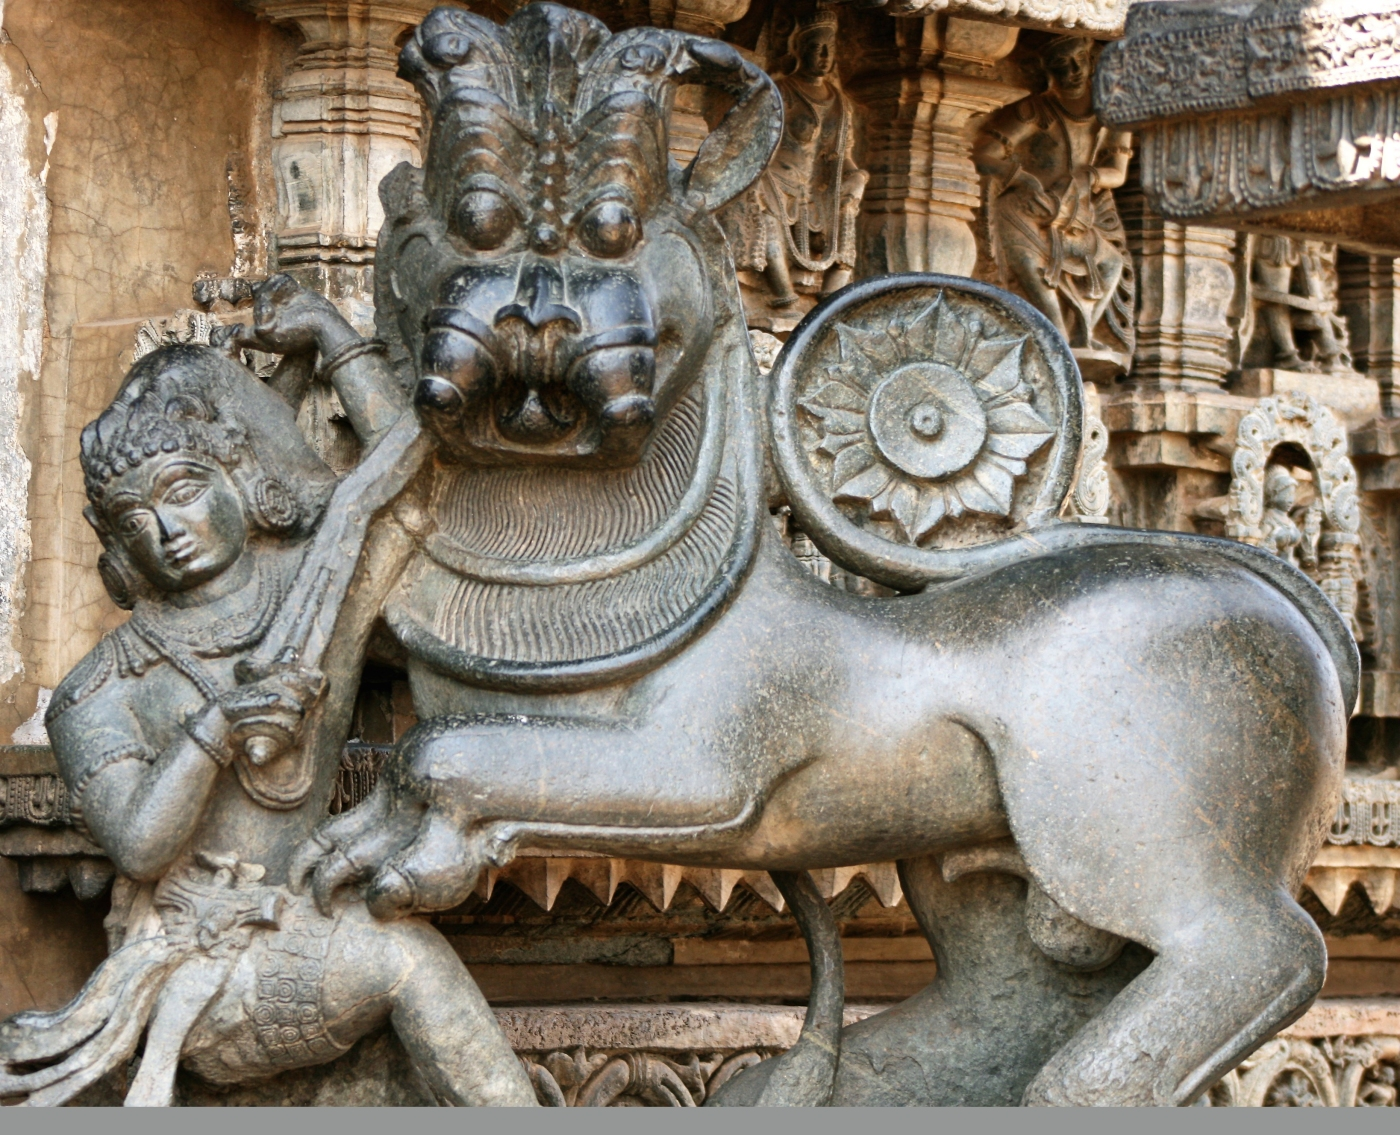 The Royal Seal of the Hoysalas